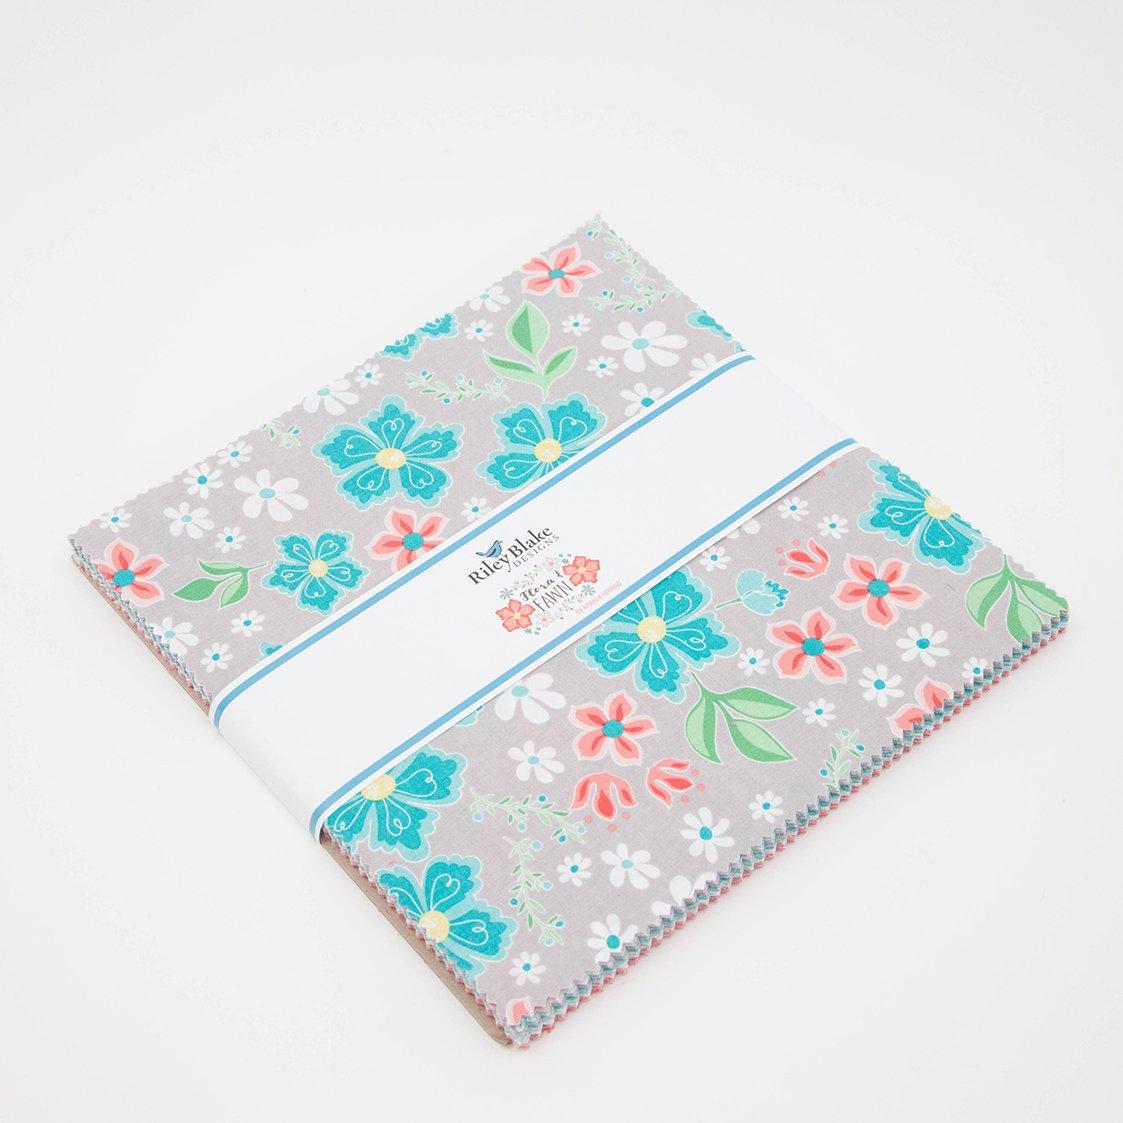 Flora & Fawn - 10 Stackers - 42 Pieces